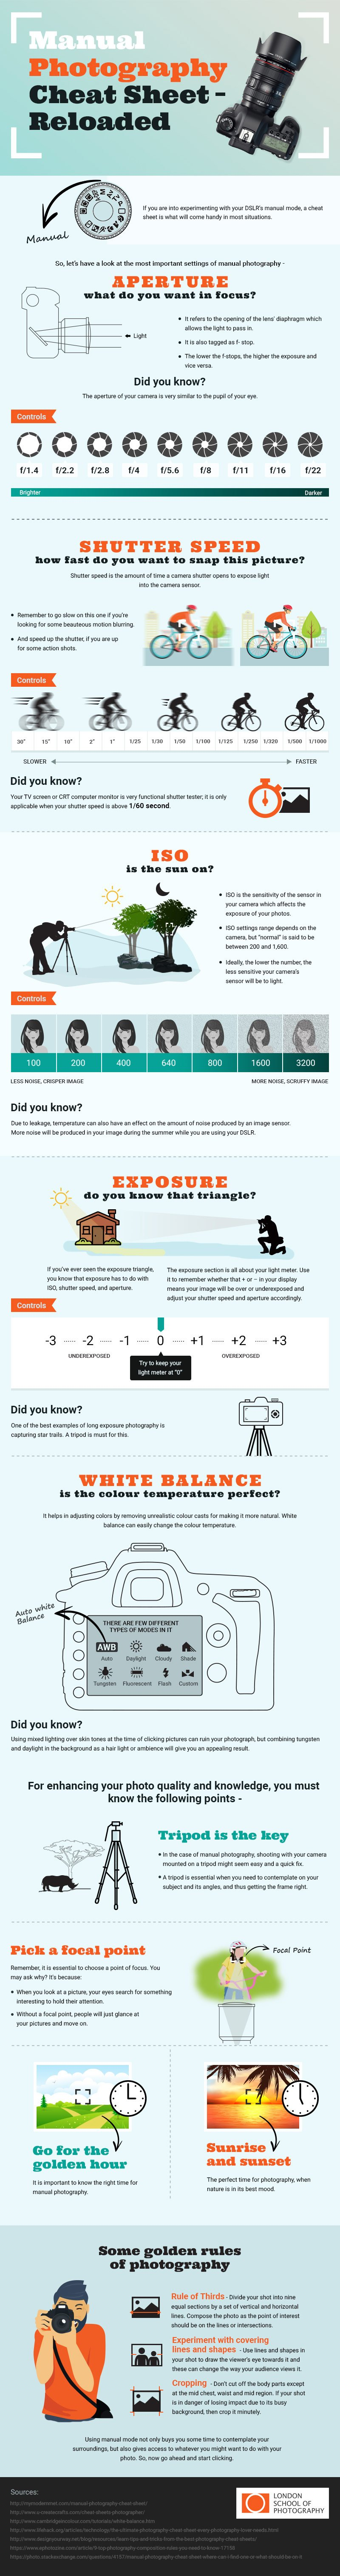 manual photography cheat sheet and infographic